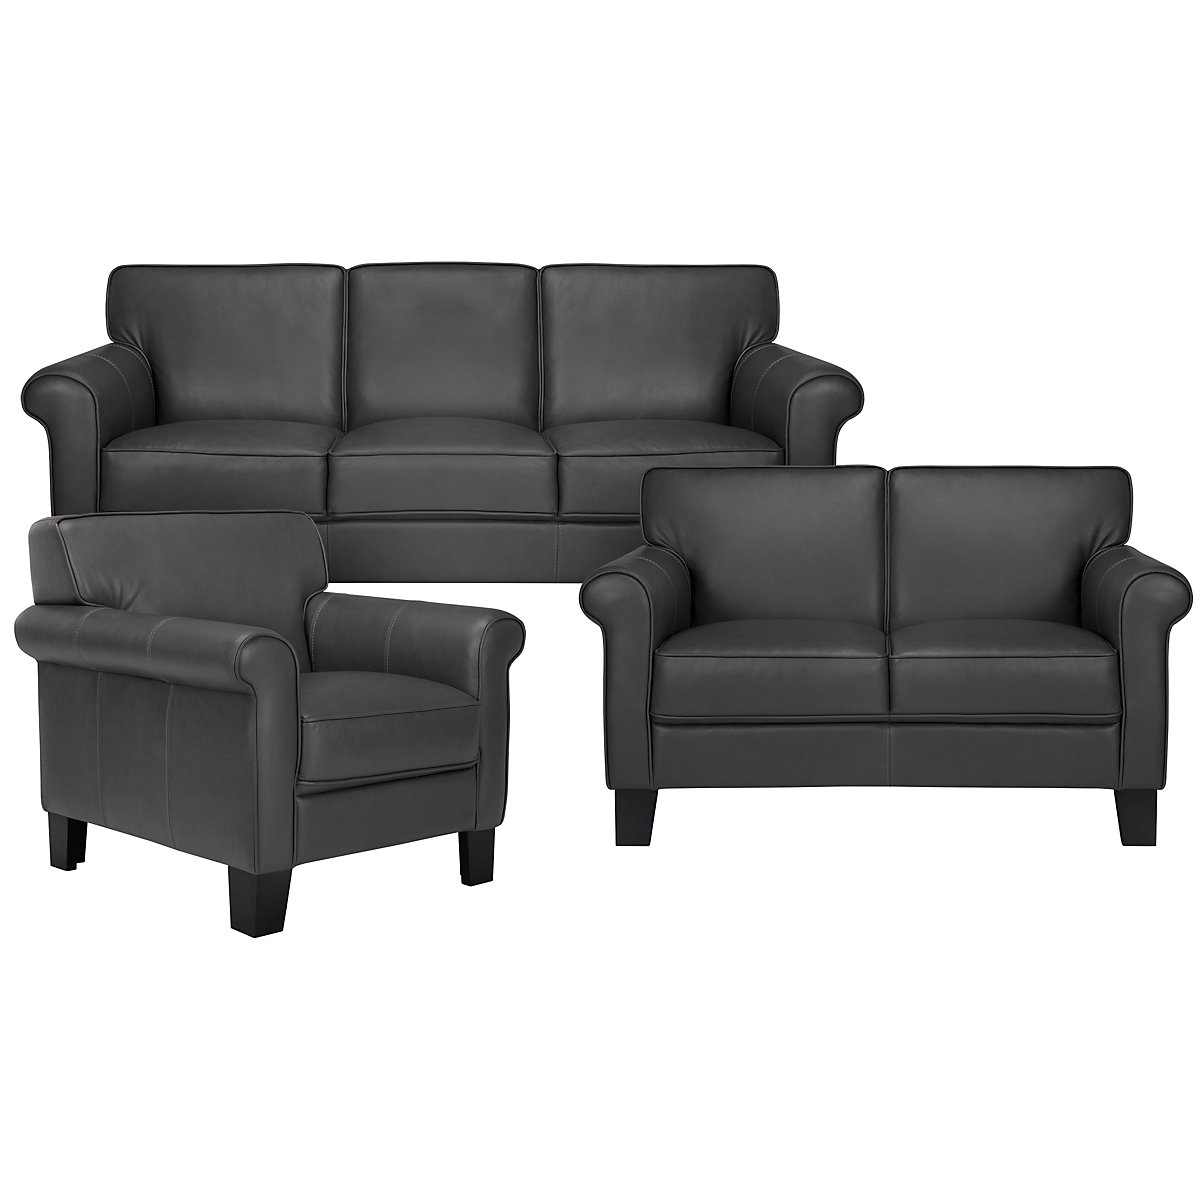 Kaila Dark Gray Leather Living Room